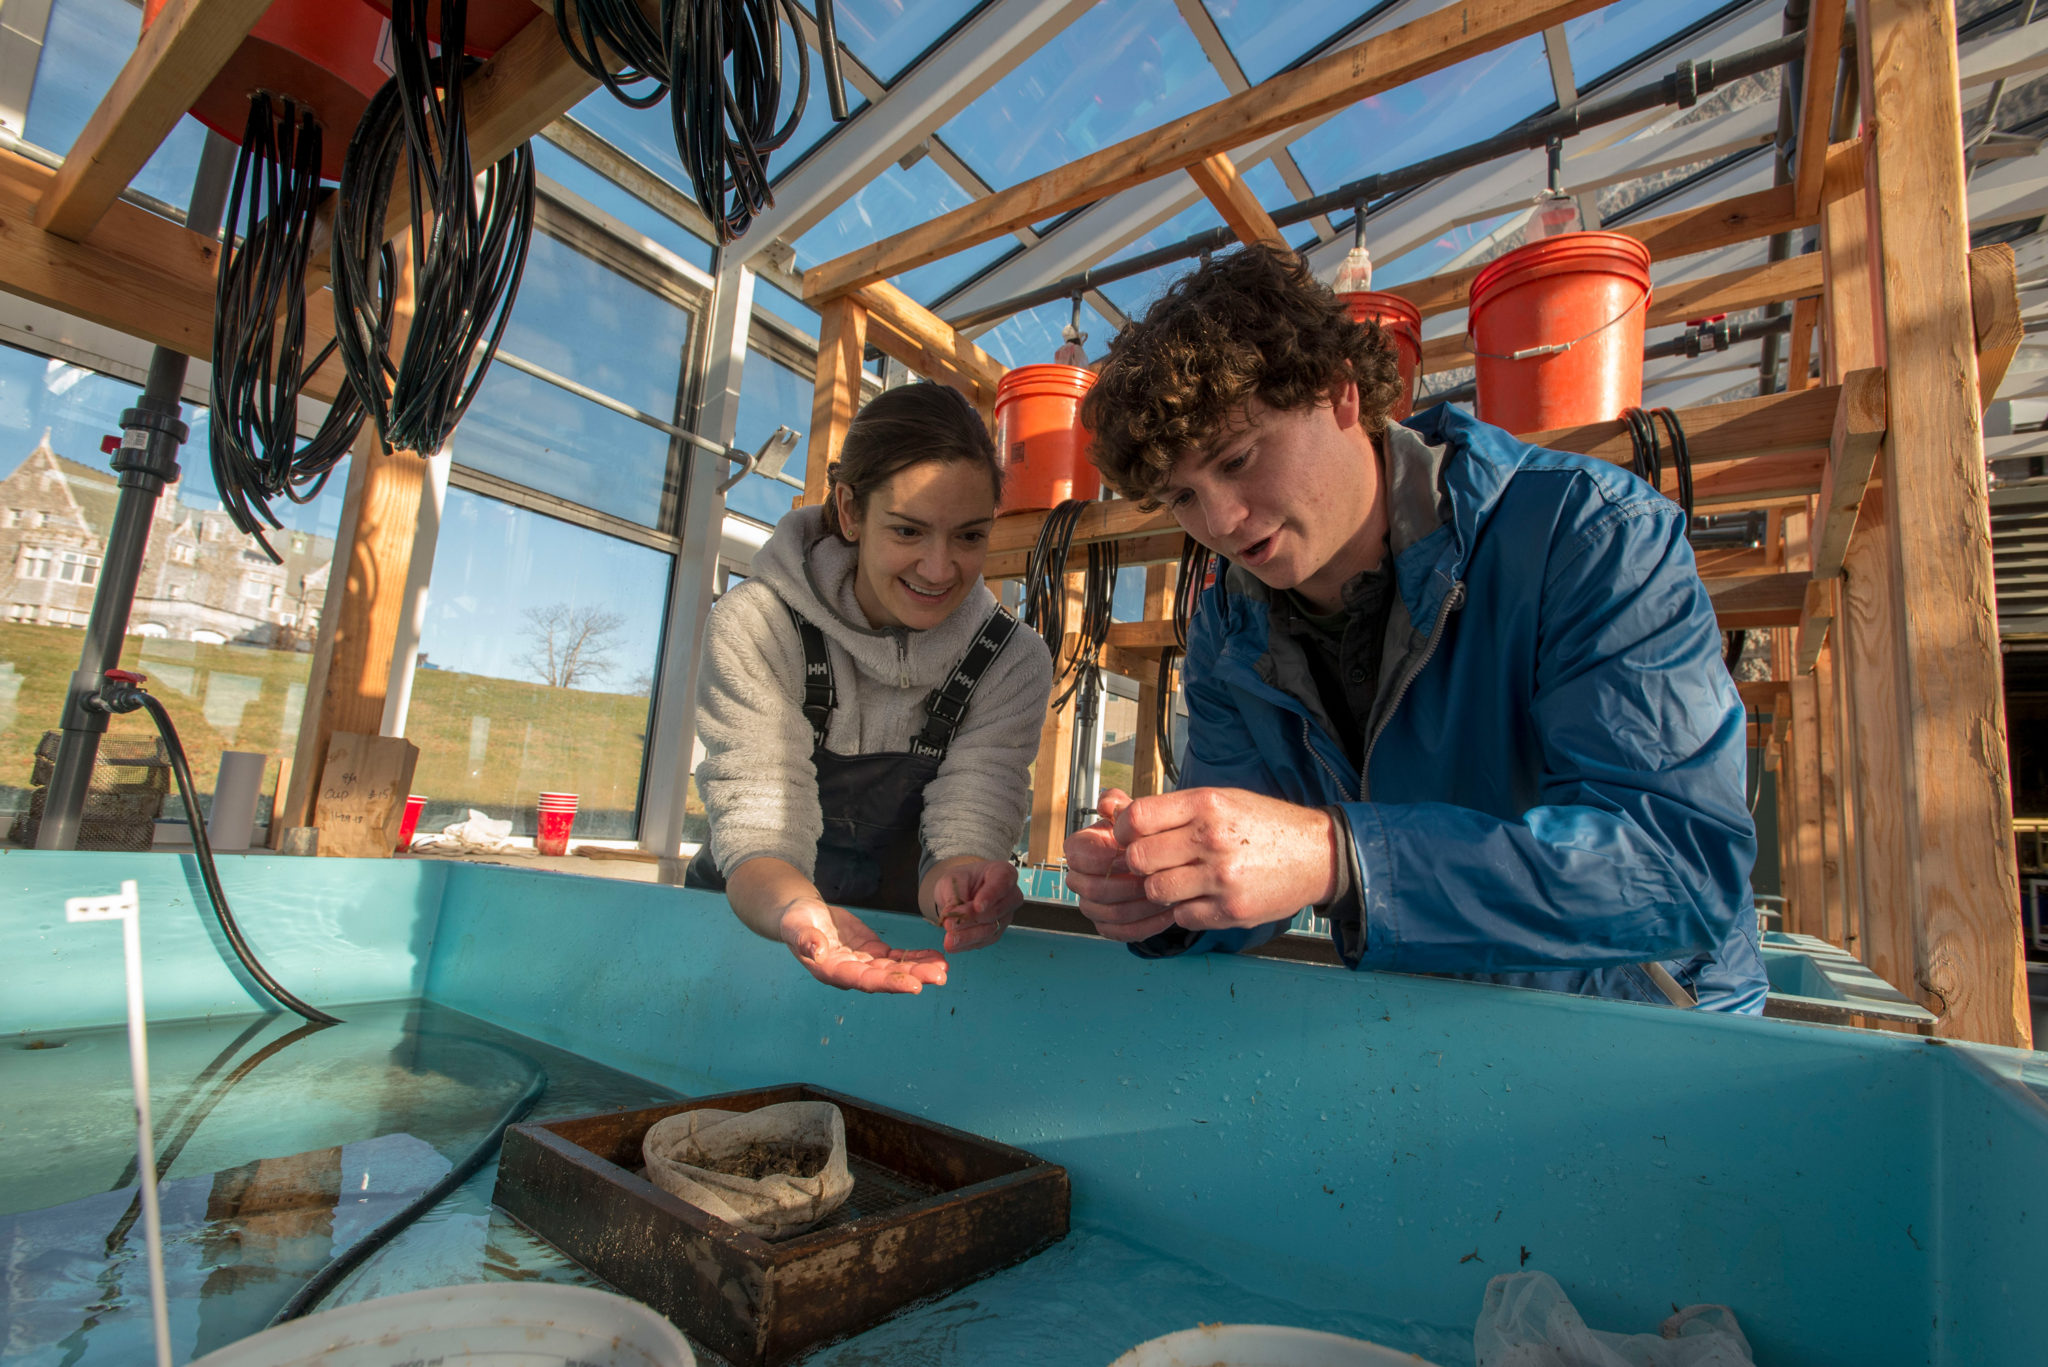 Sean Ryan Ph.D. student and Assistant Professor Catherine Matassa working on a research project at UConn Avery Point